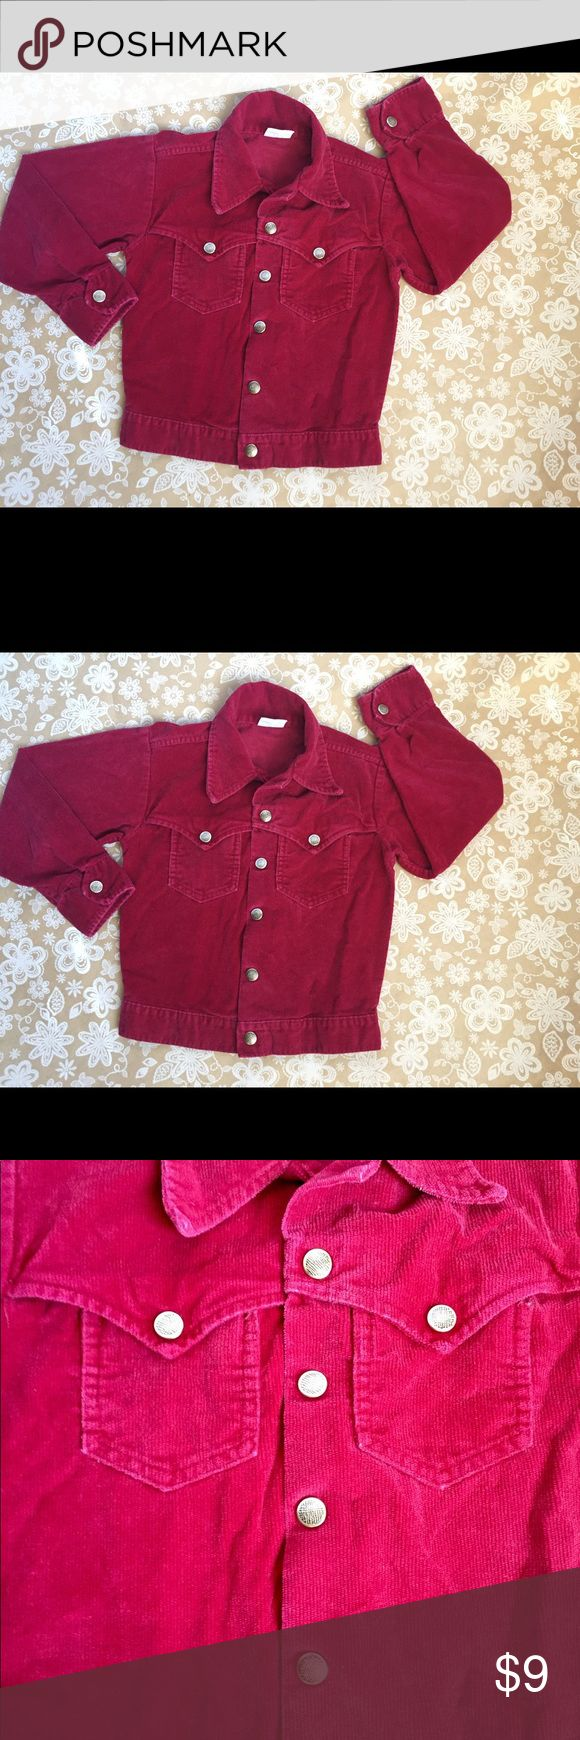 Billy the Kid washable burgundy corduroy jacket Billy the Kid washable burgundy corduroy jacket has snap closure and two front packers. Great little details make this an amazing piece in every girl's closet! Jean jacket type style. Billy the Kid Jackets & Coats